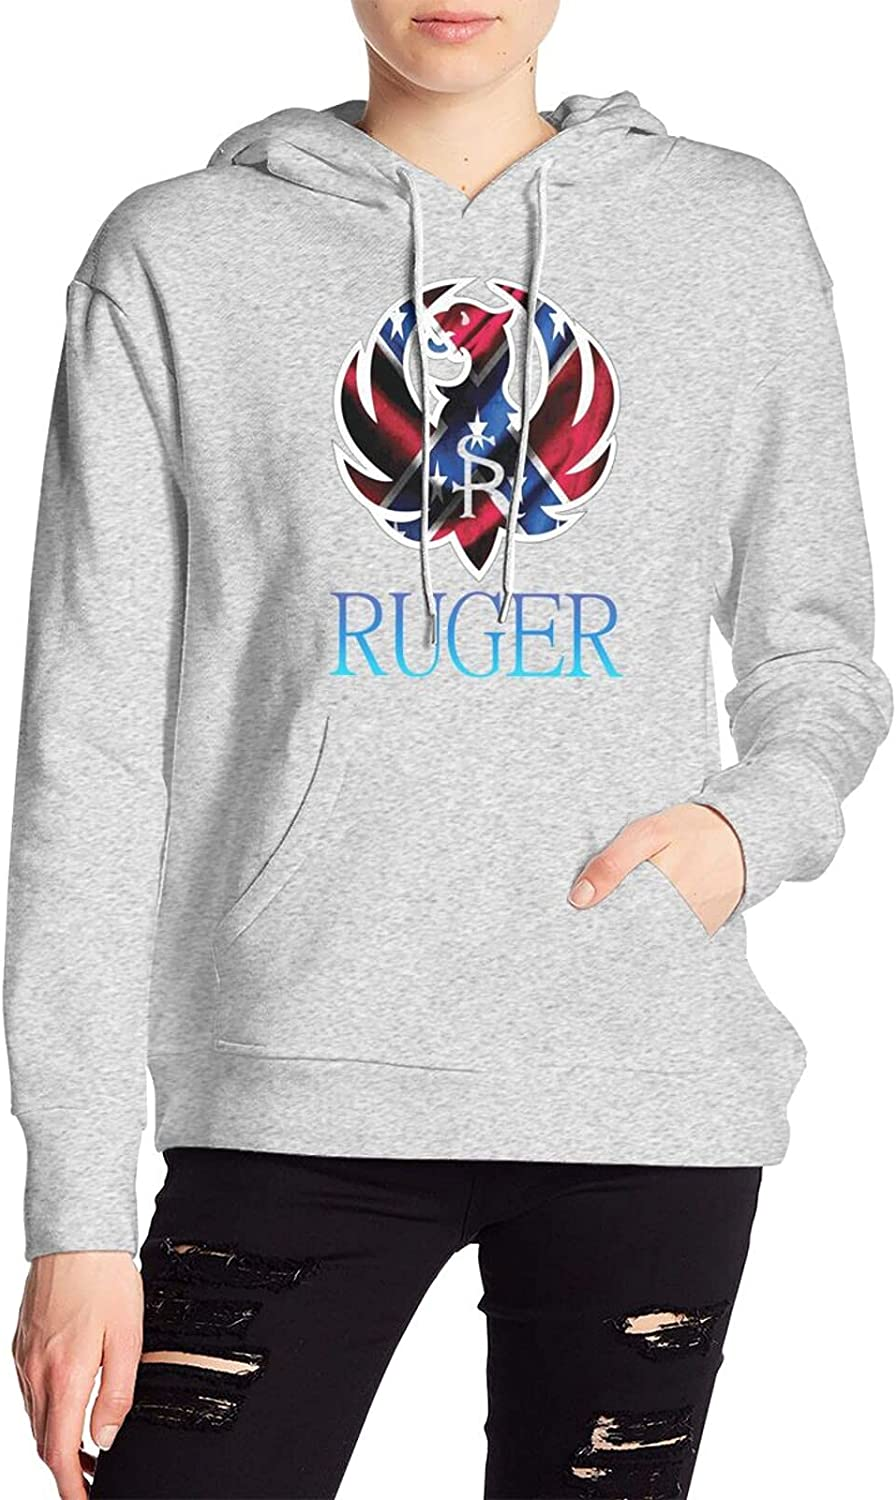 Ruger Women's hooded Max 72% OFF Max 48% OFF Gray sweatshirt